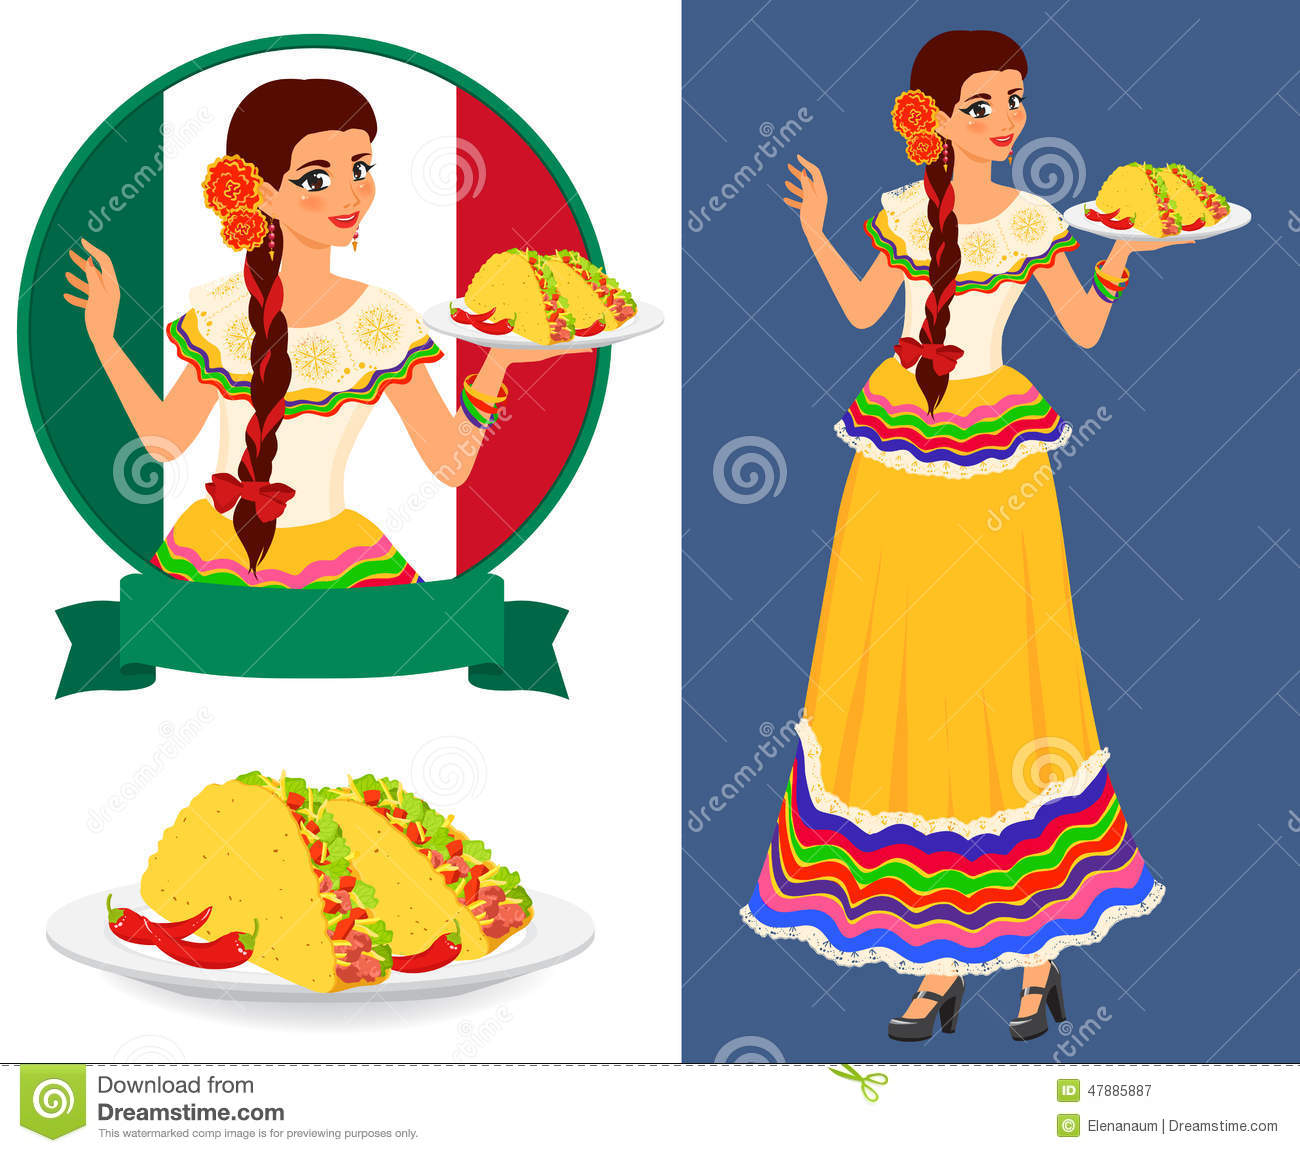 Is Mexican Food Ethnic